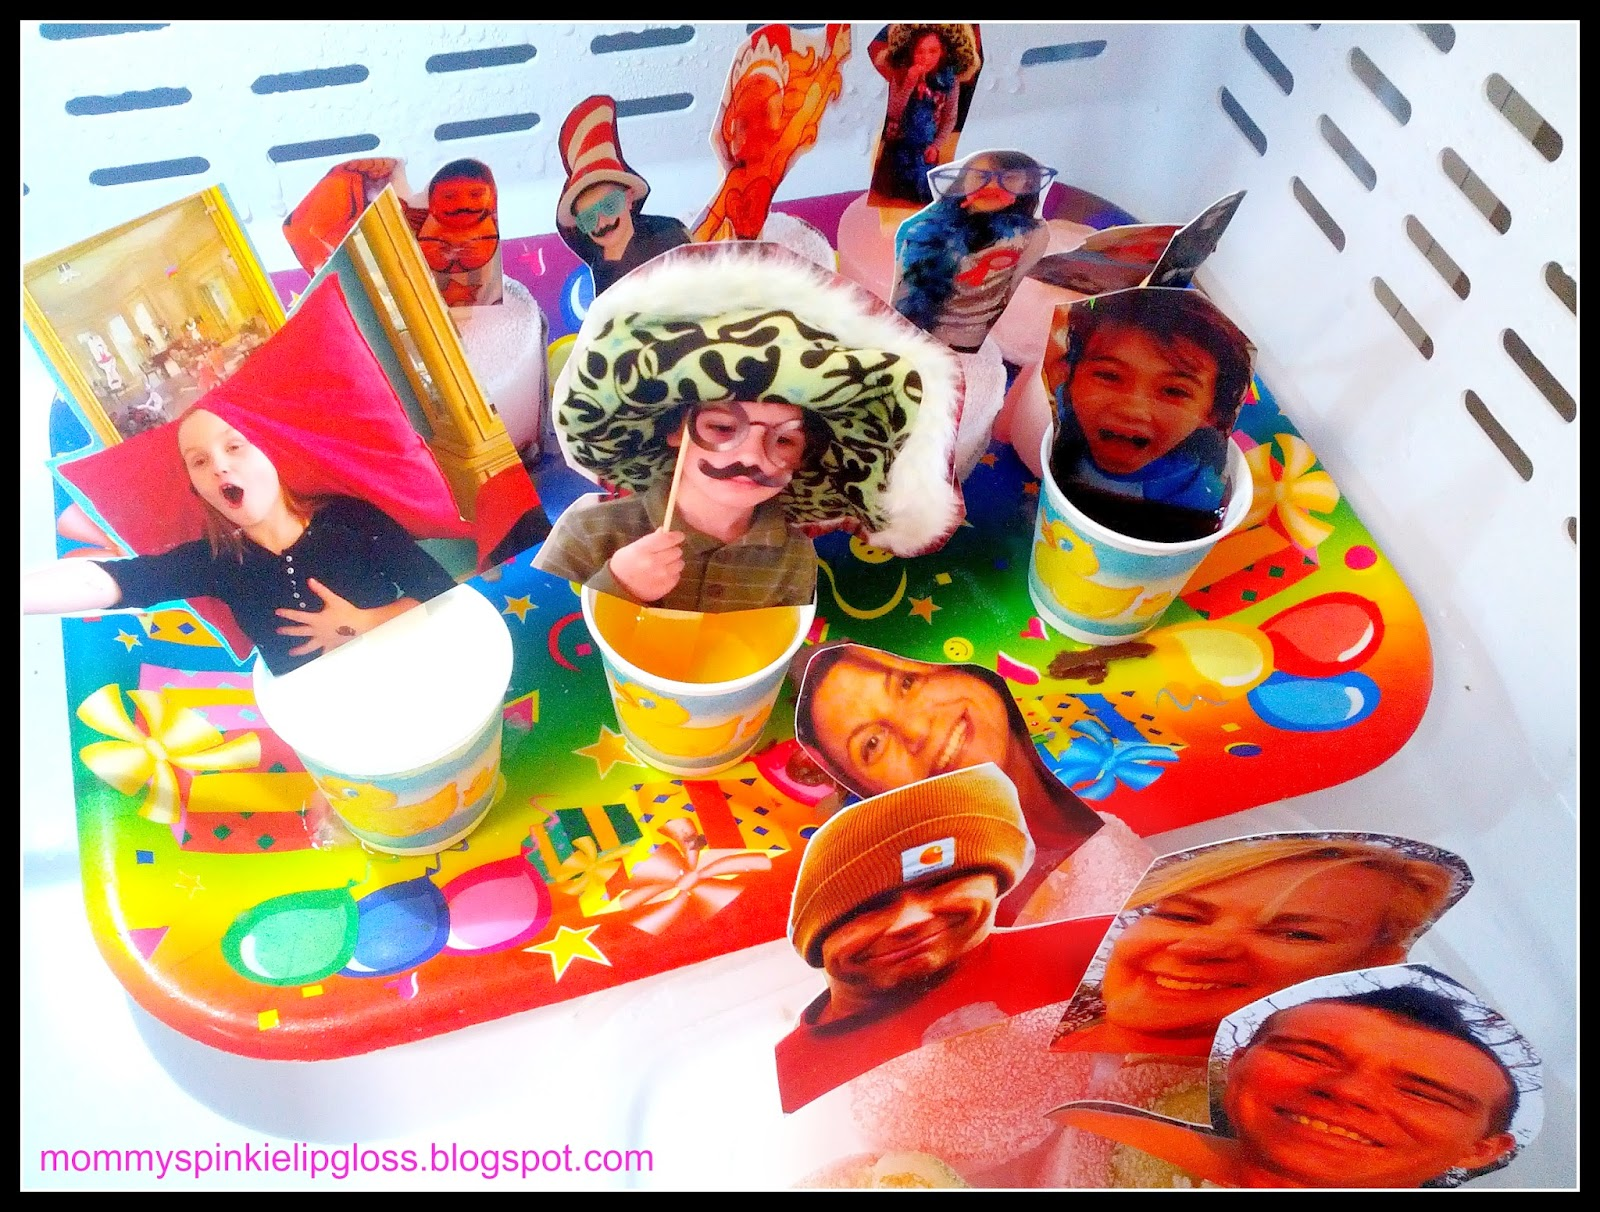 Popsicles party Margarita popsicles fun drinks from MommysPinkielipgloss.blogspot.com